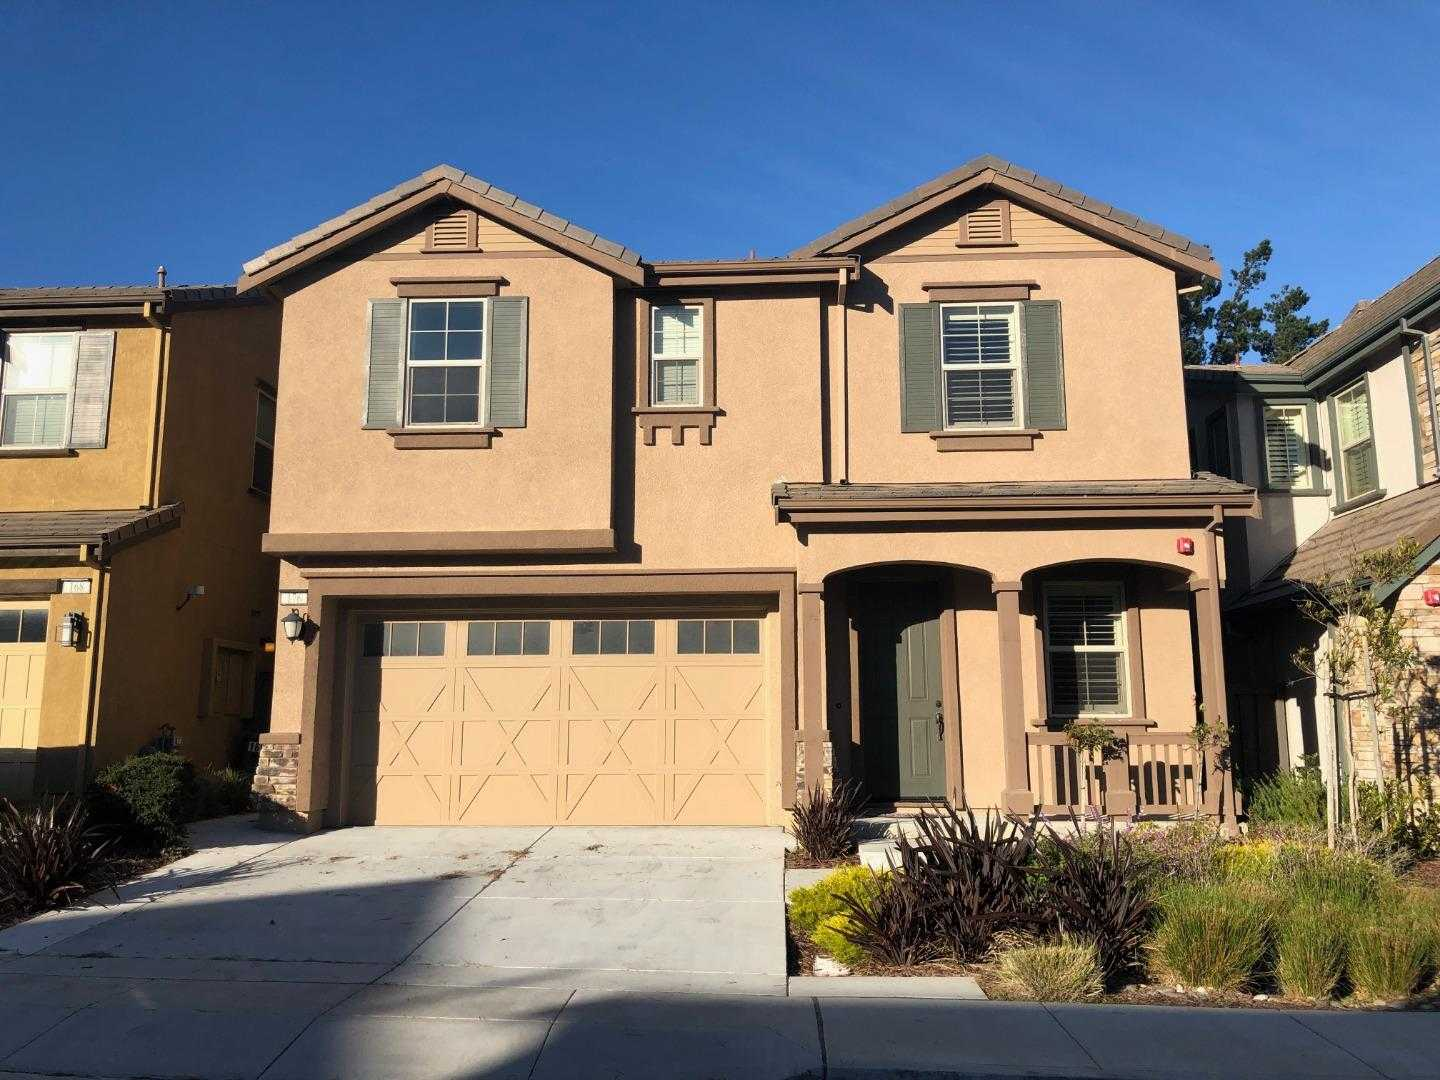 176 Crestview CIR DALY CITY, CA 94015